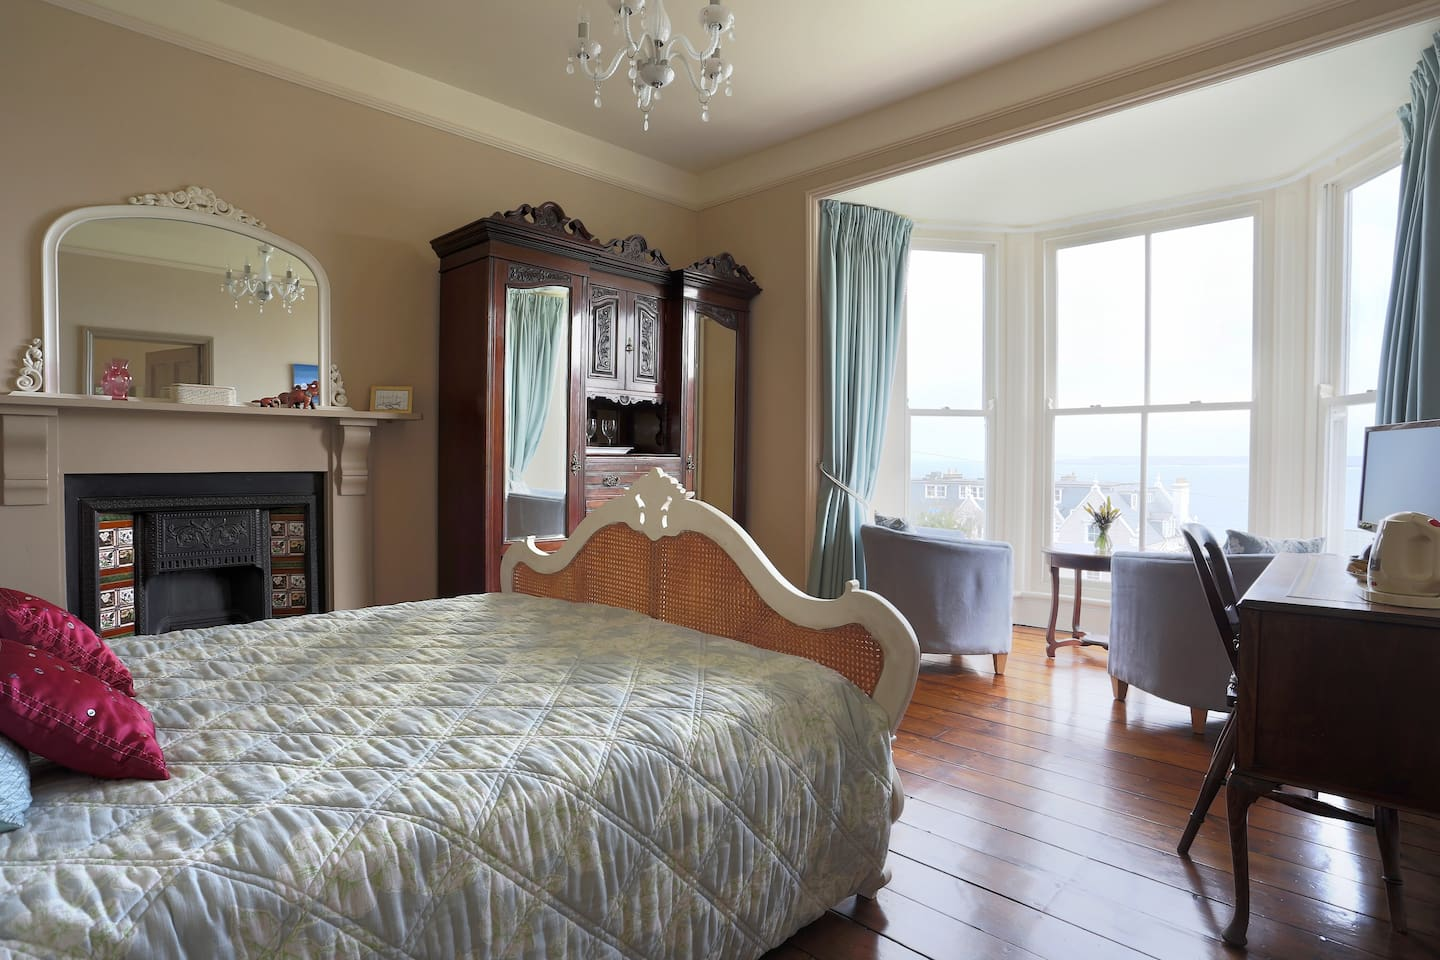 Enjoy the spectacular view of the Cornish coast from your room